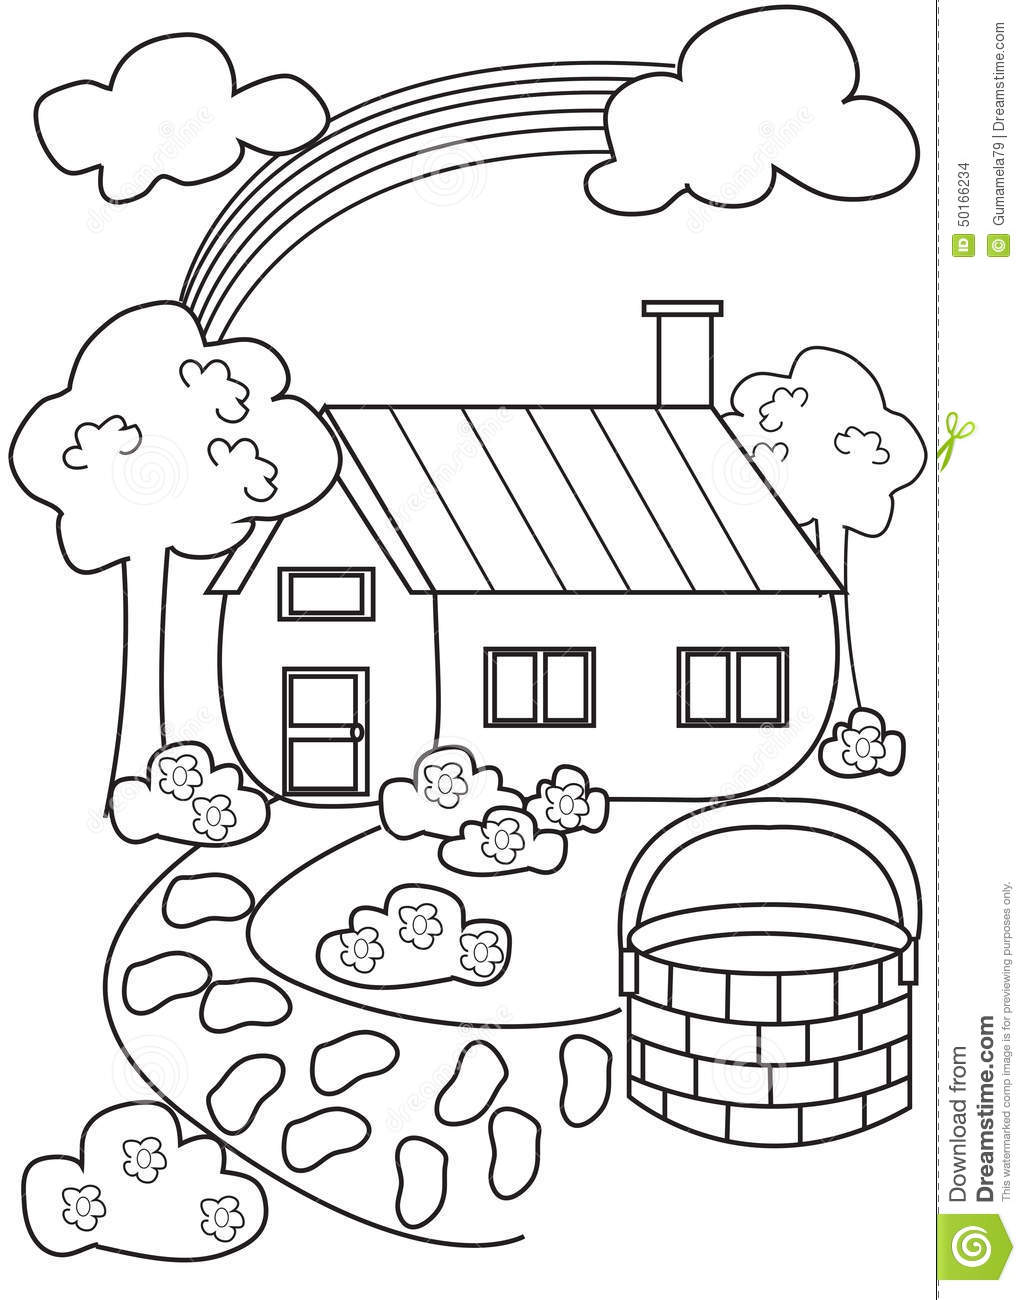 House Coloring Page Illustration 50166234 - Megapixl